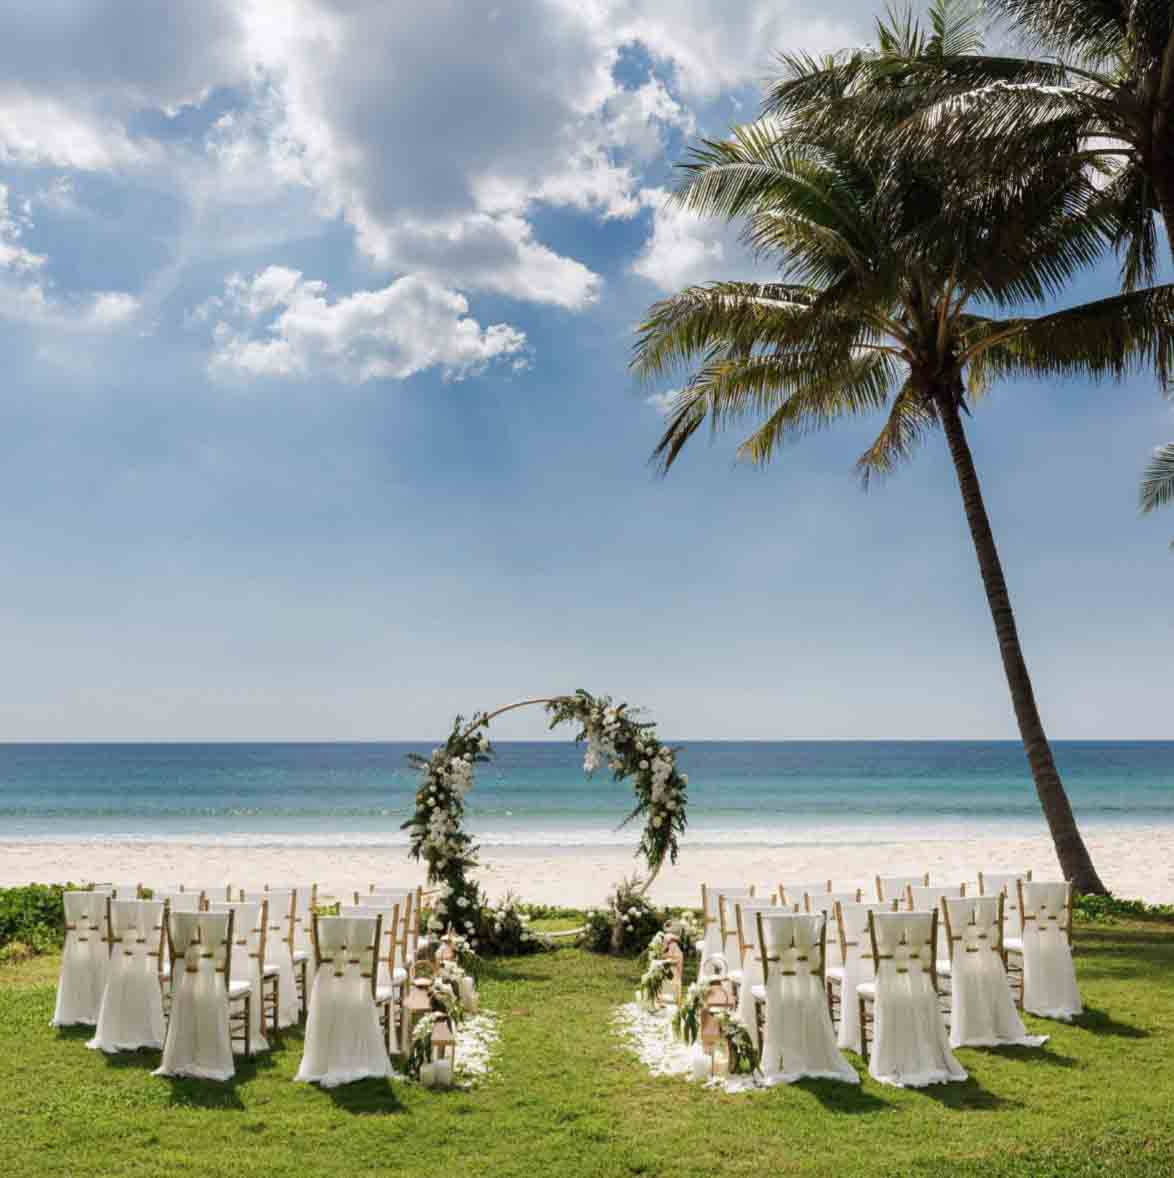 The Surin Phuket Wedding Ceremony (30 pax)